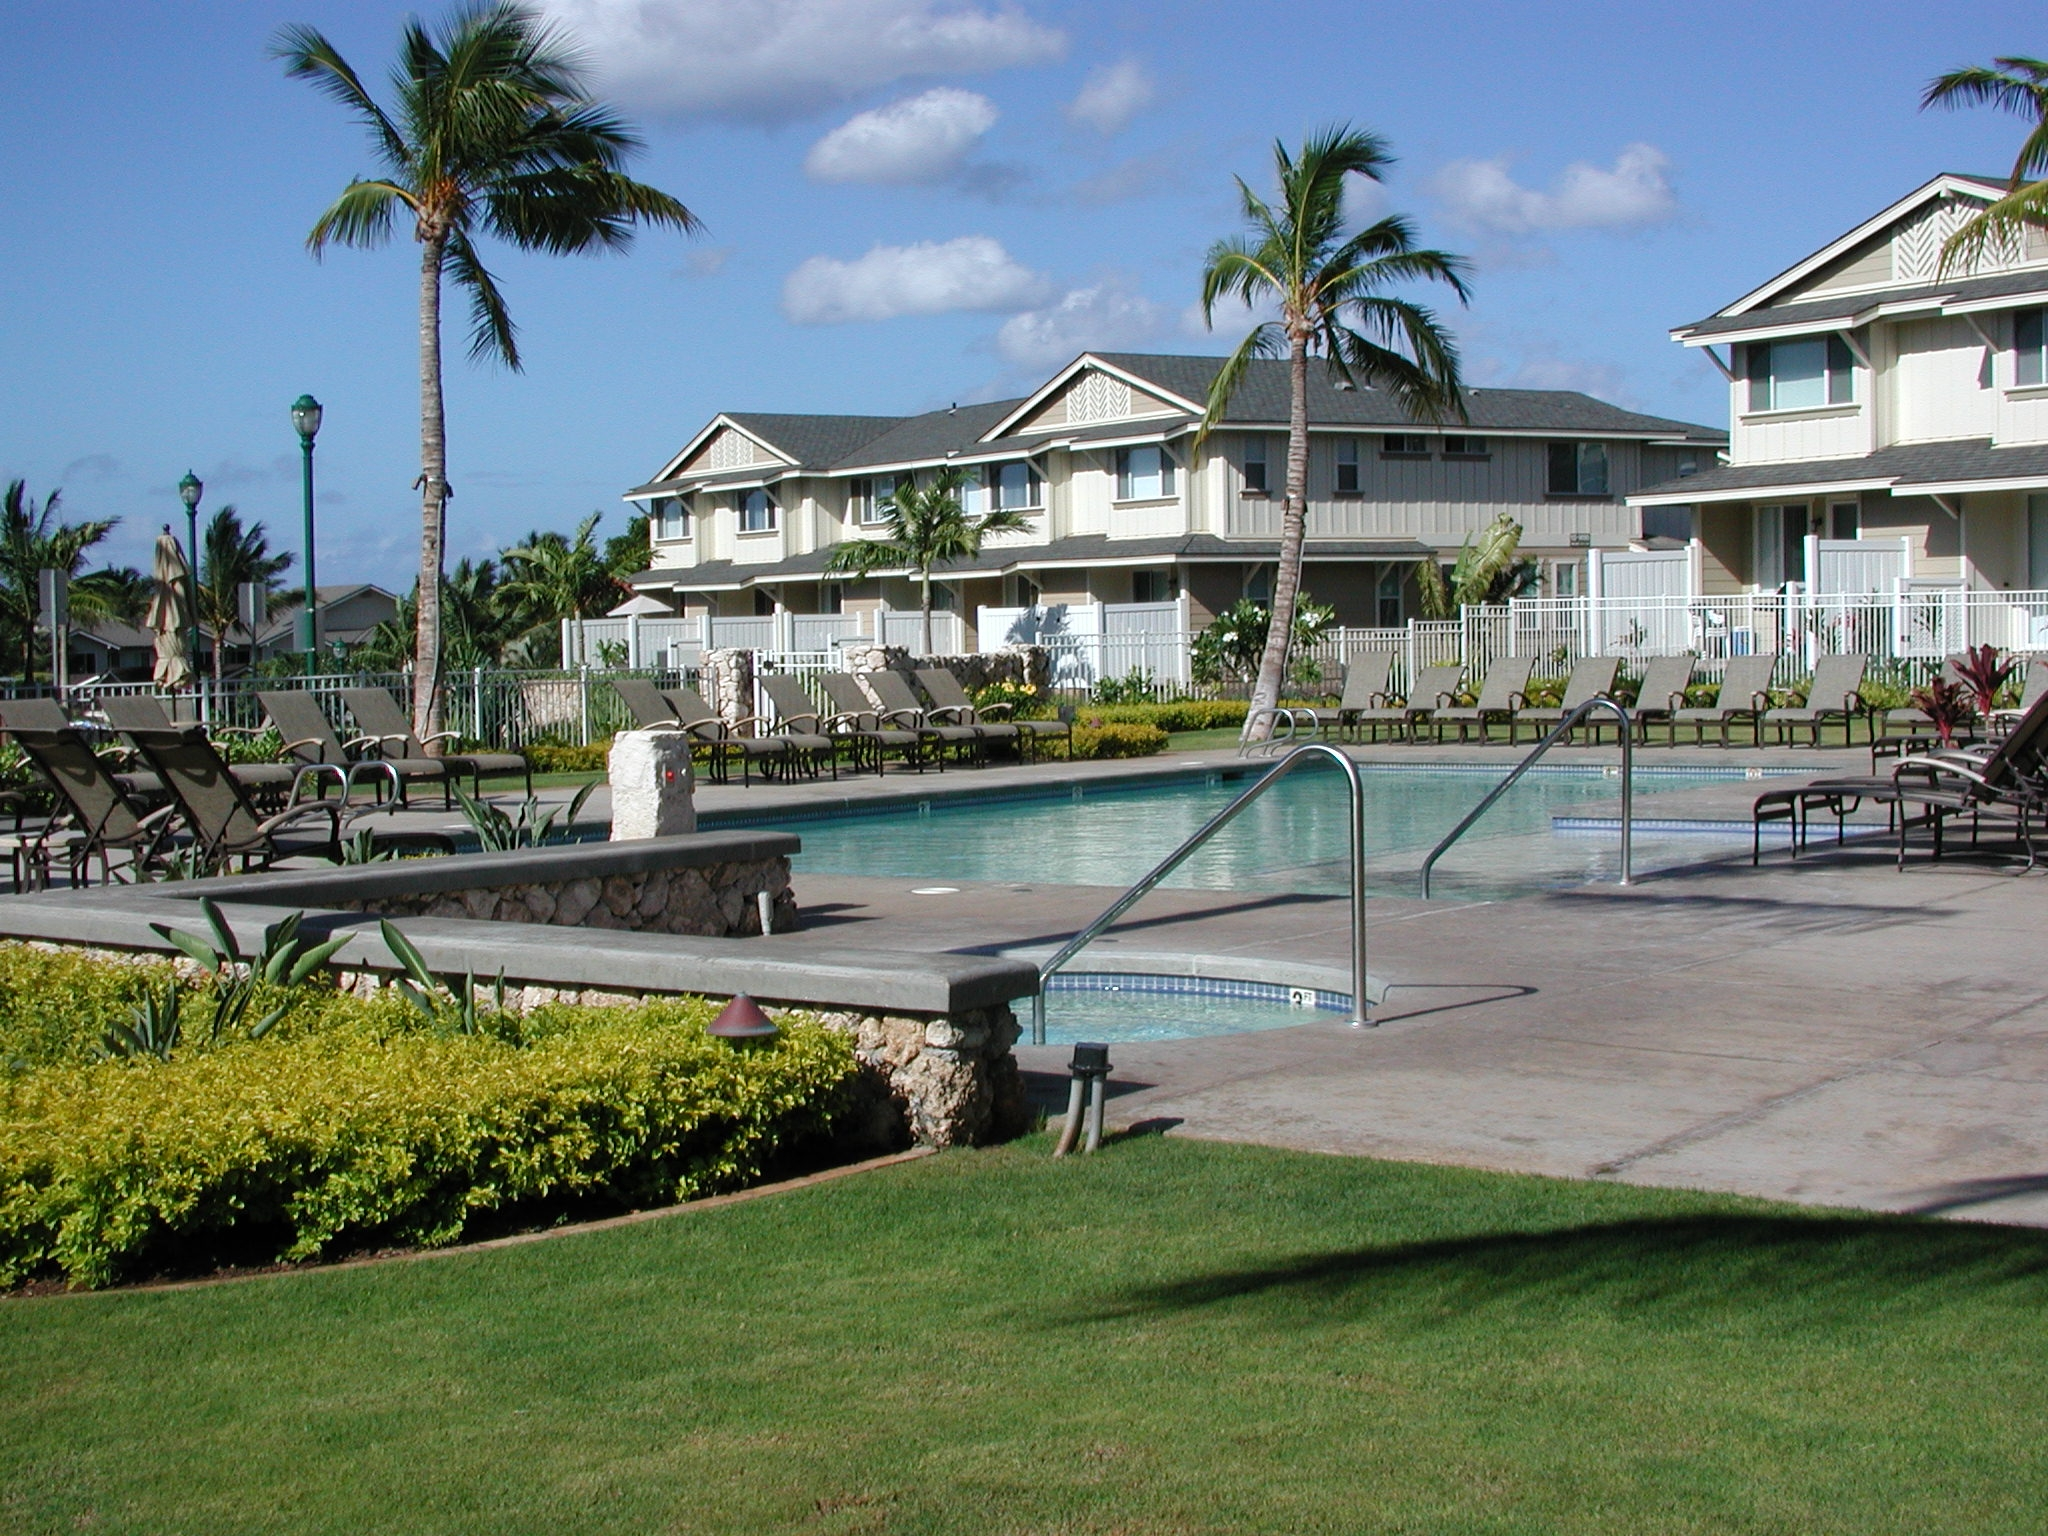 The pool and jacuzzi at the Ko Olina Hillside Villas. Full access during open hours for all residents and guests.